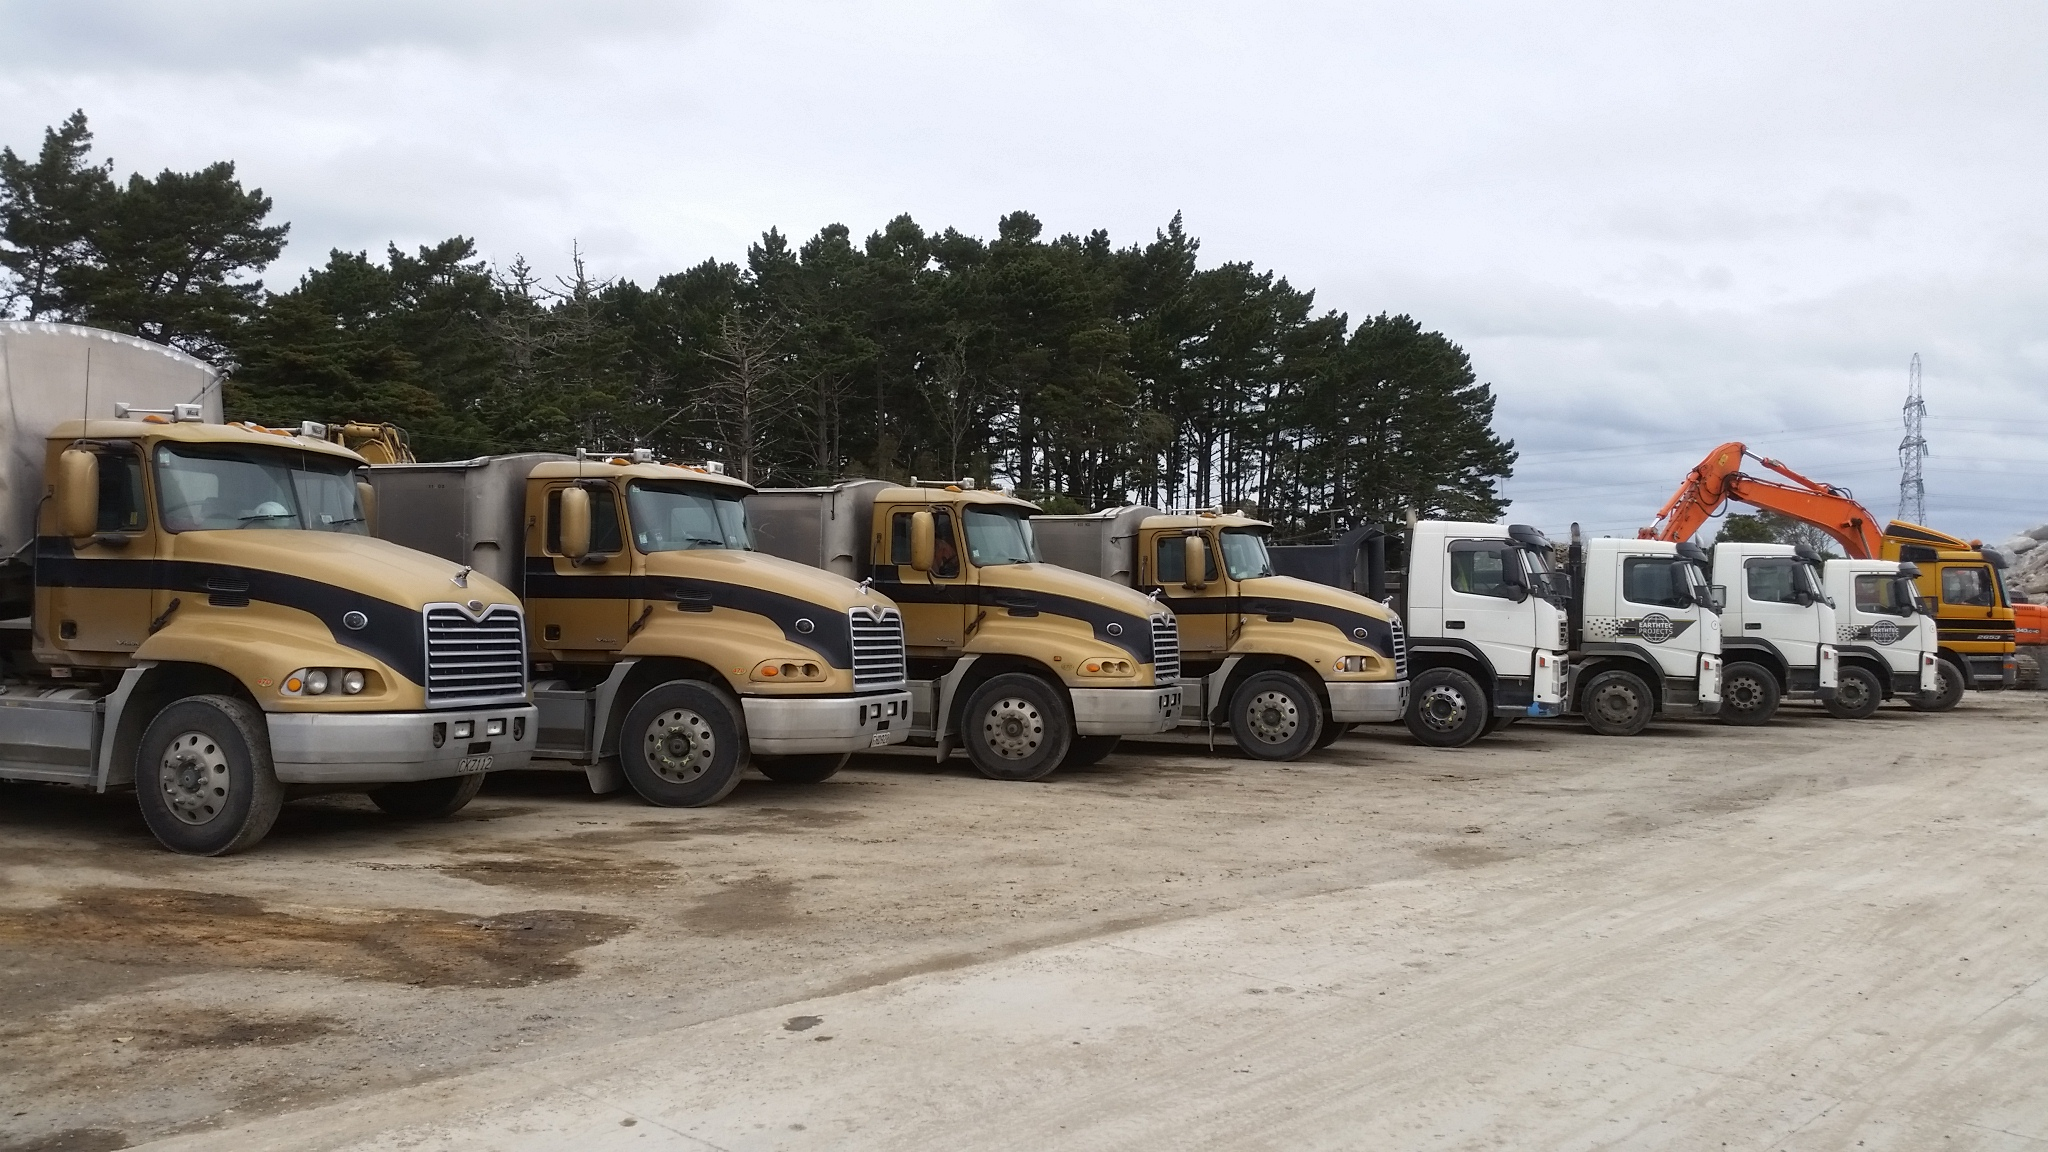 Reliable trucks of Earthtec